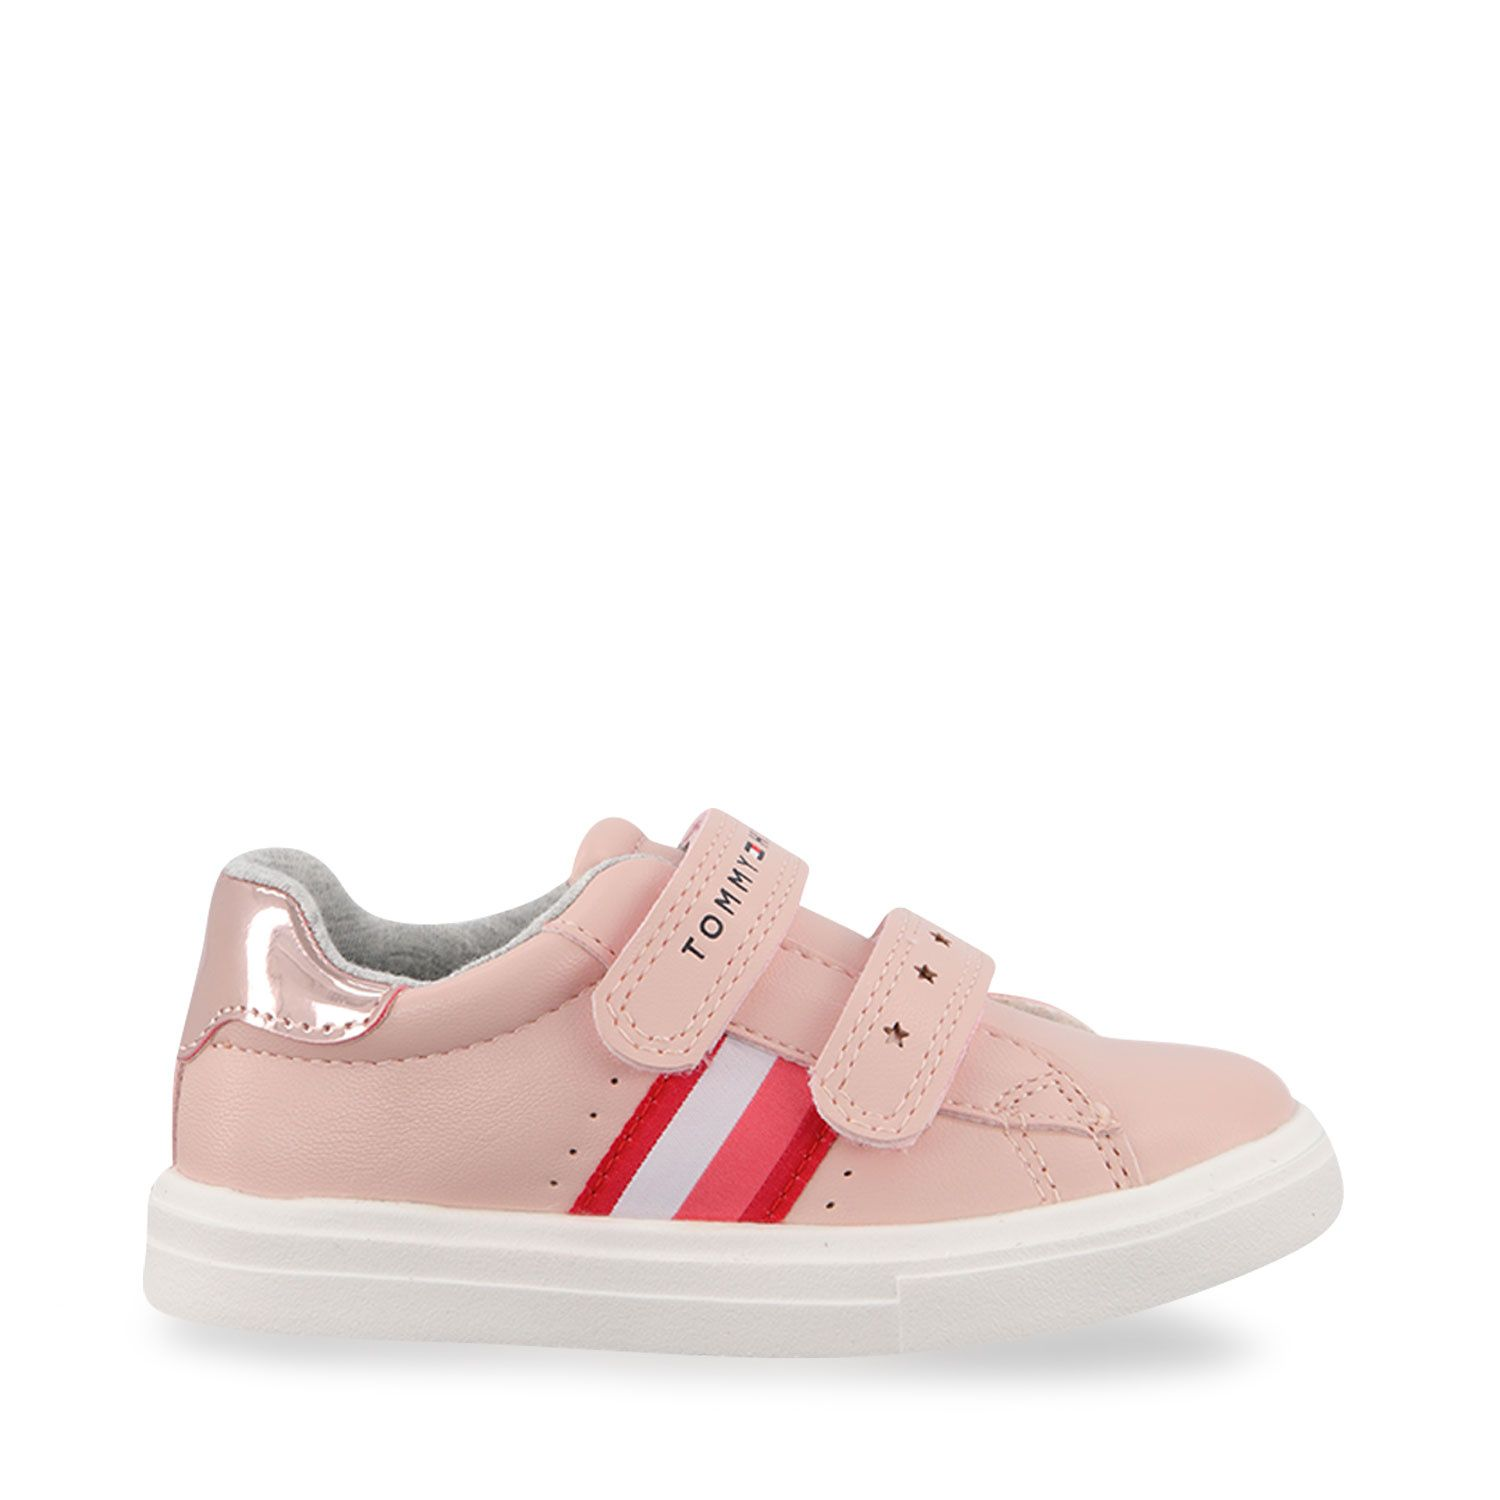 Picture of Tommy Hilfiger 31012 kids sneakers light pink